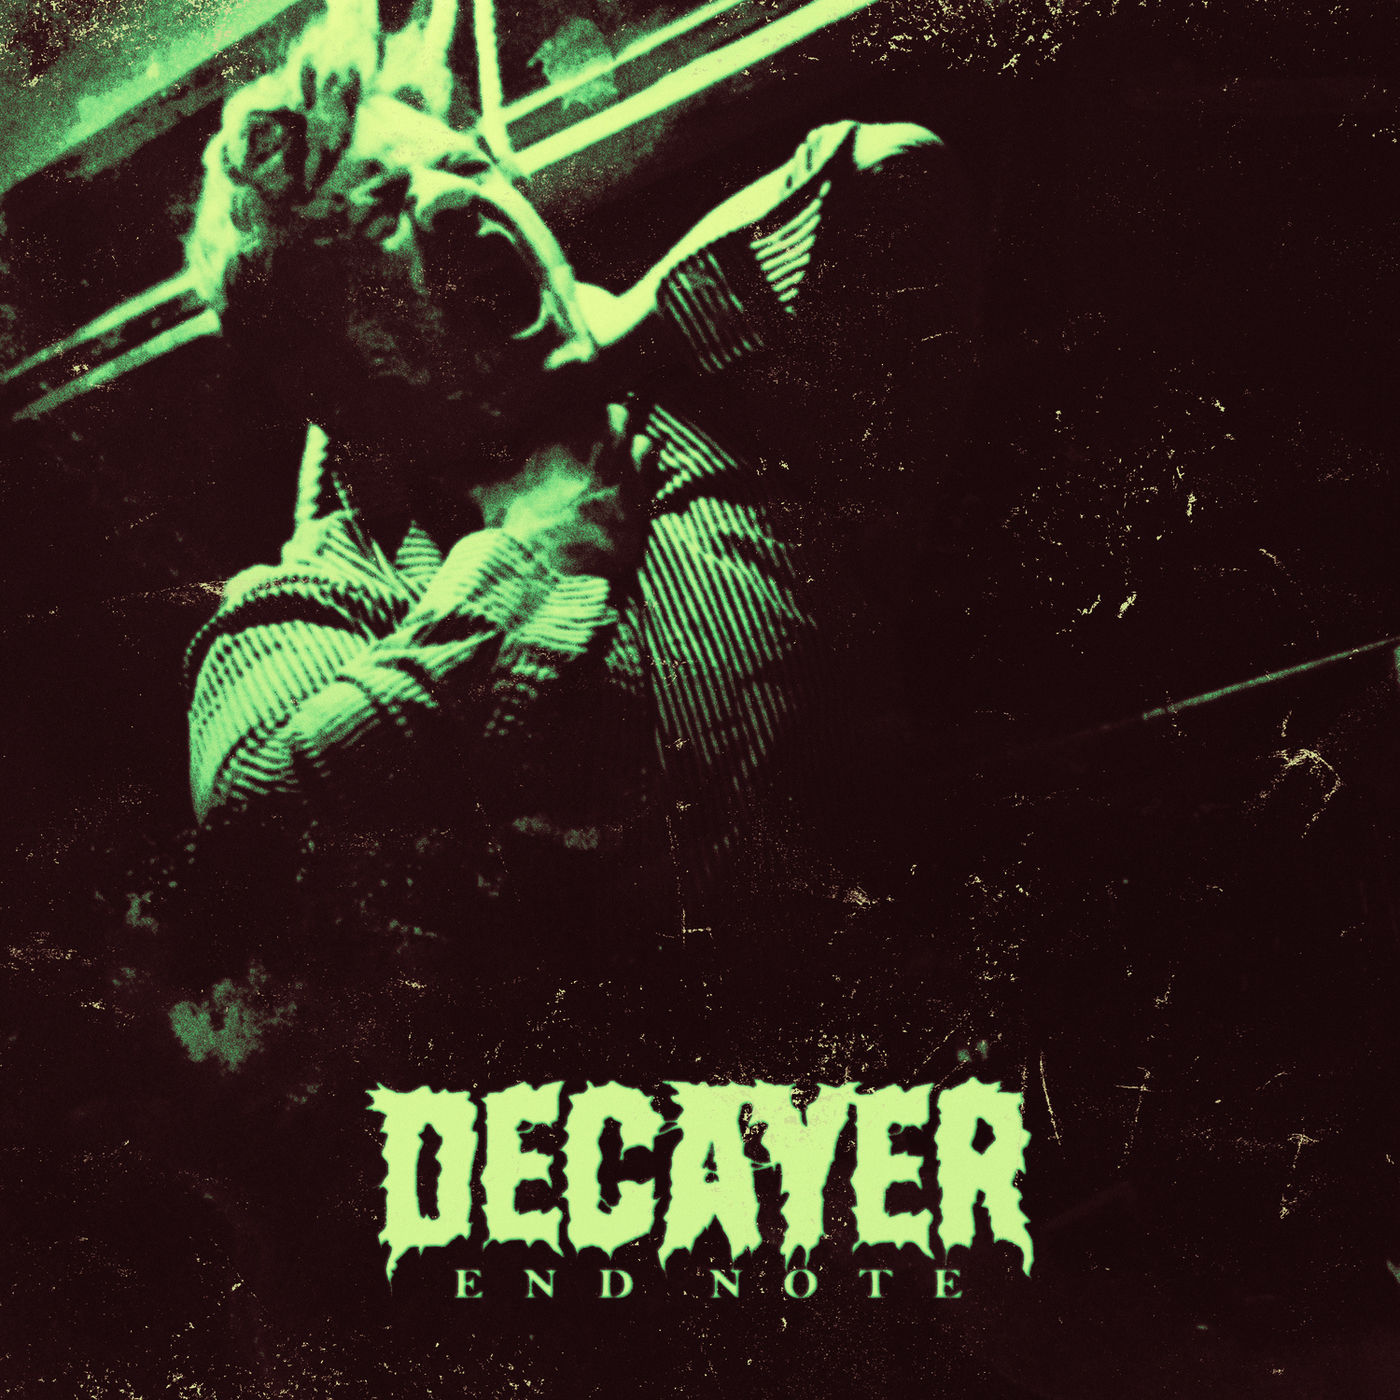 Decayer - End Note (2019)